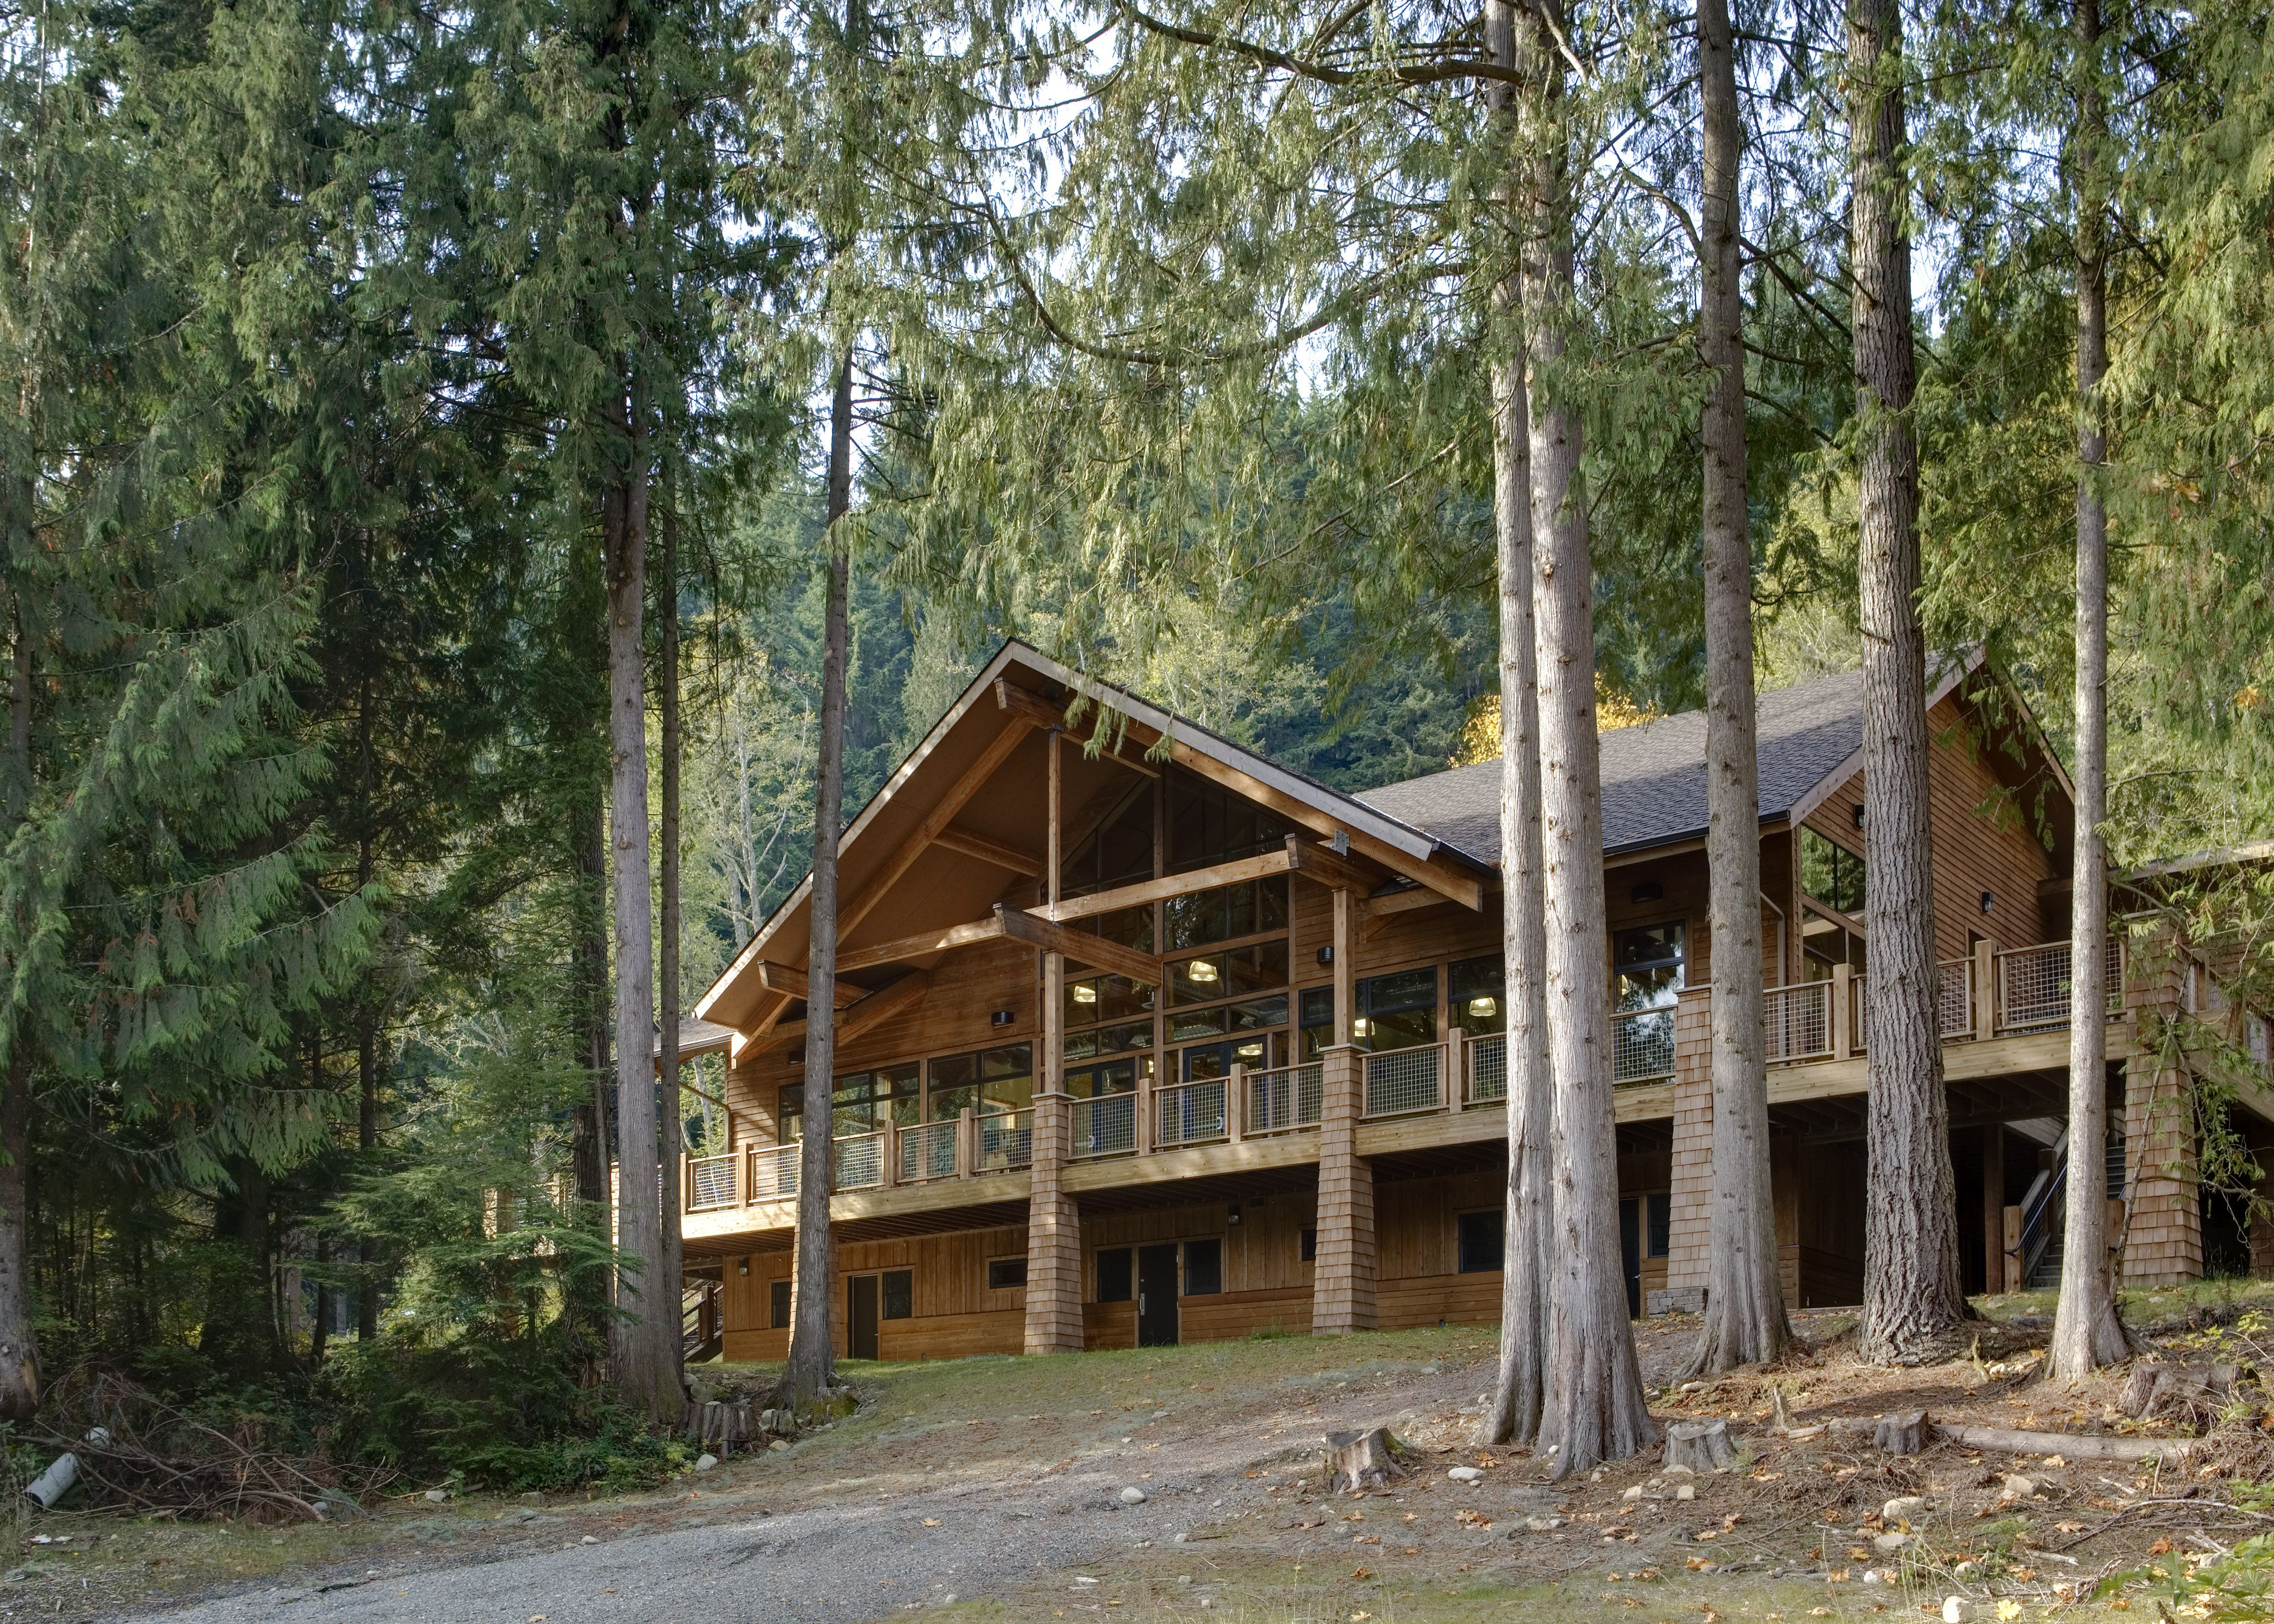 camp murray catholic singles Christian singles events, activities, groups in minnesota (mn) for fellowship, bible study, socializing also christian singles conferences, retreats, cruises, vacations.